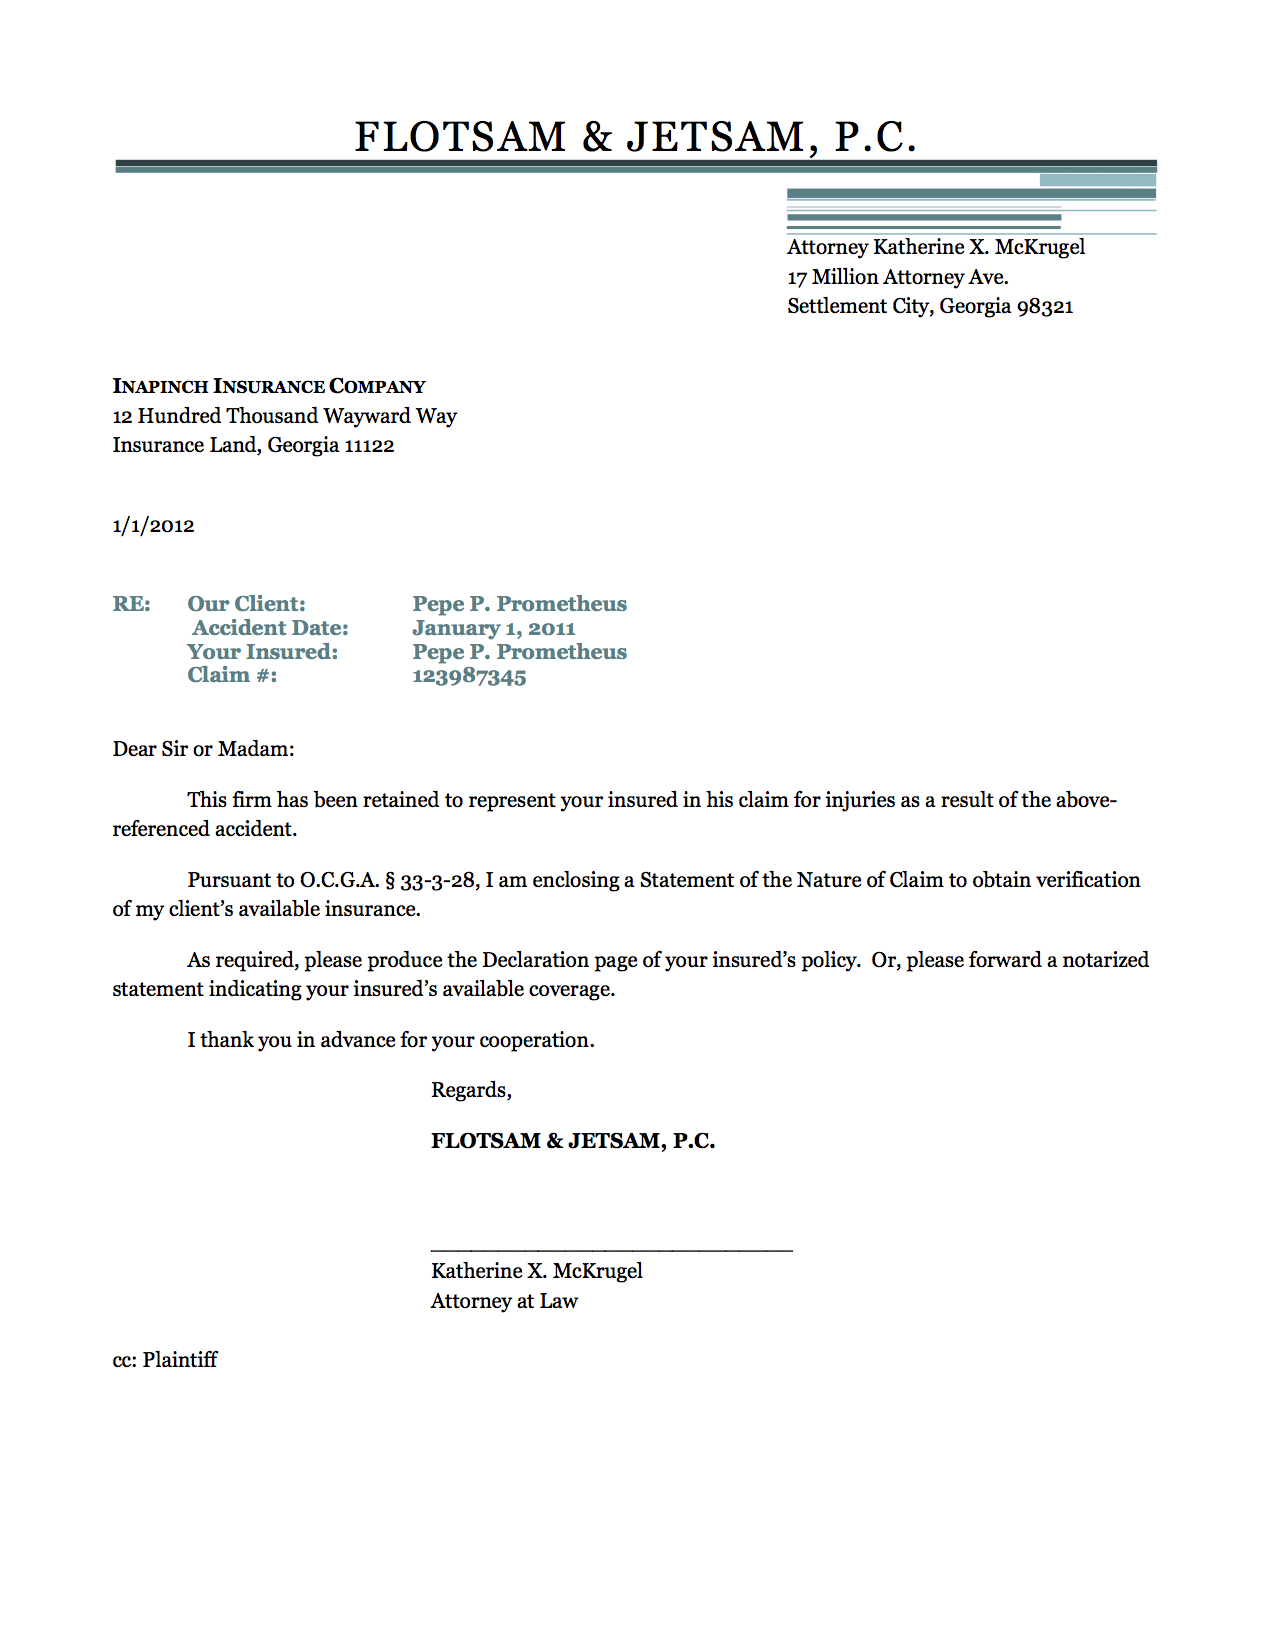 Lien Demand Letter Template - Free Cover Letter Templates Writing A Demand Letter